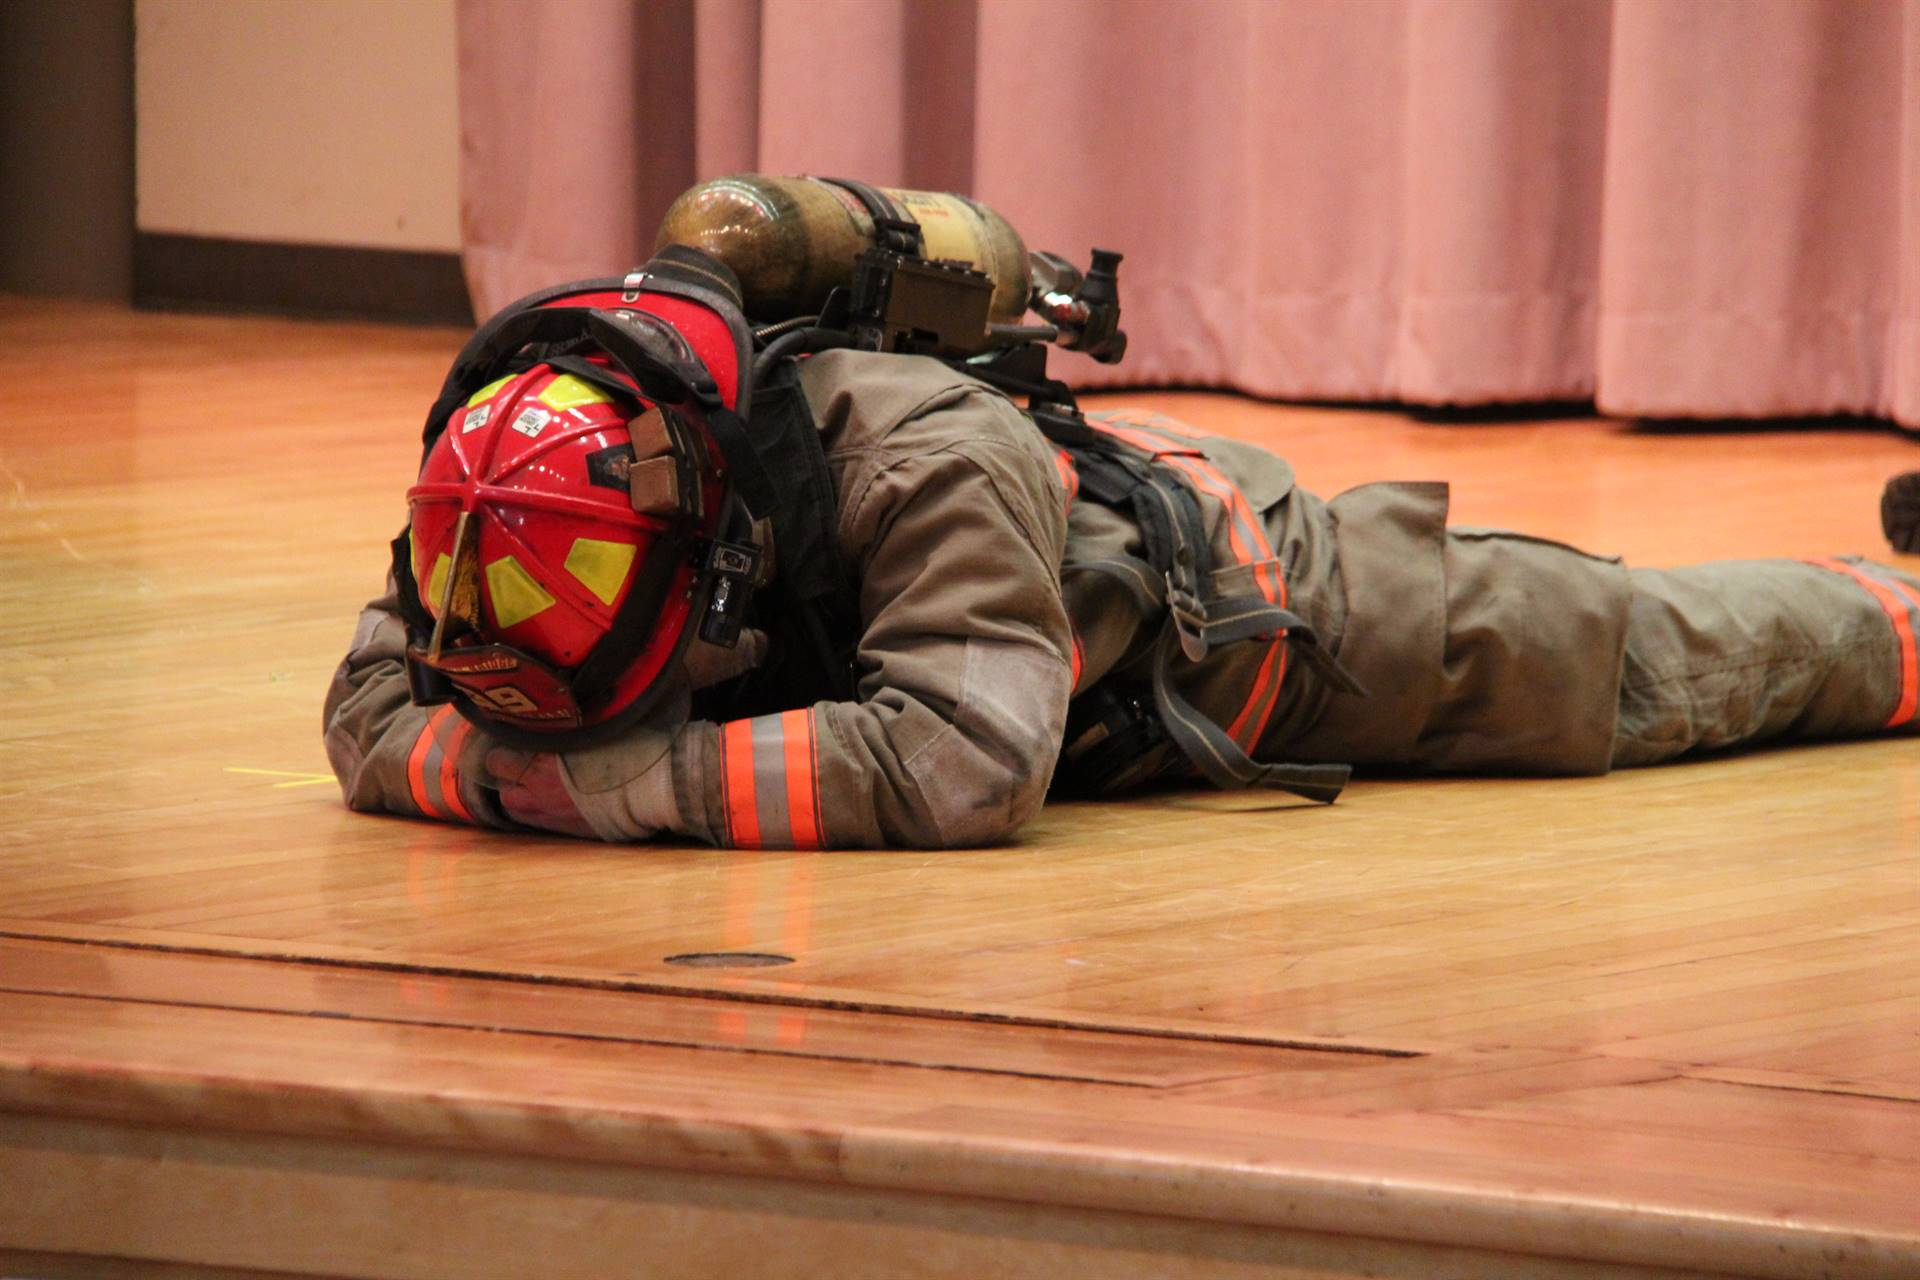 firefighter demonstration laying on floor